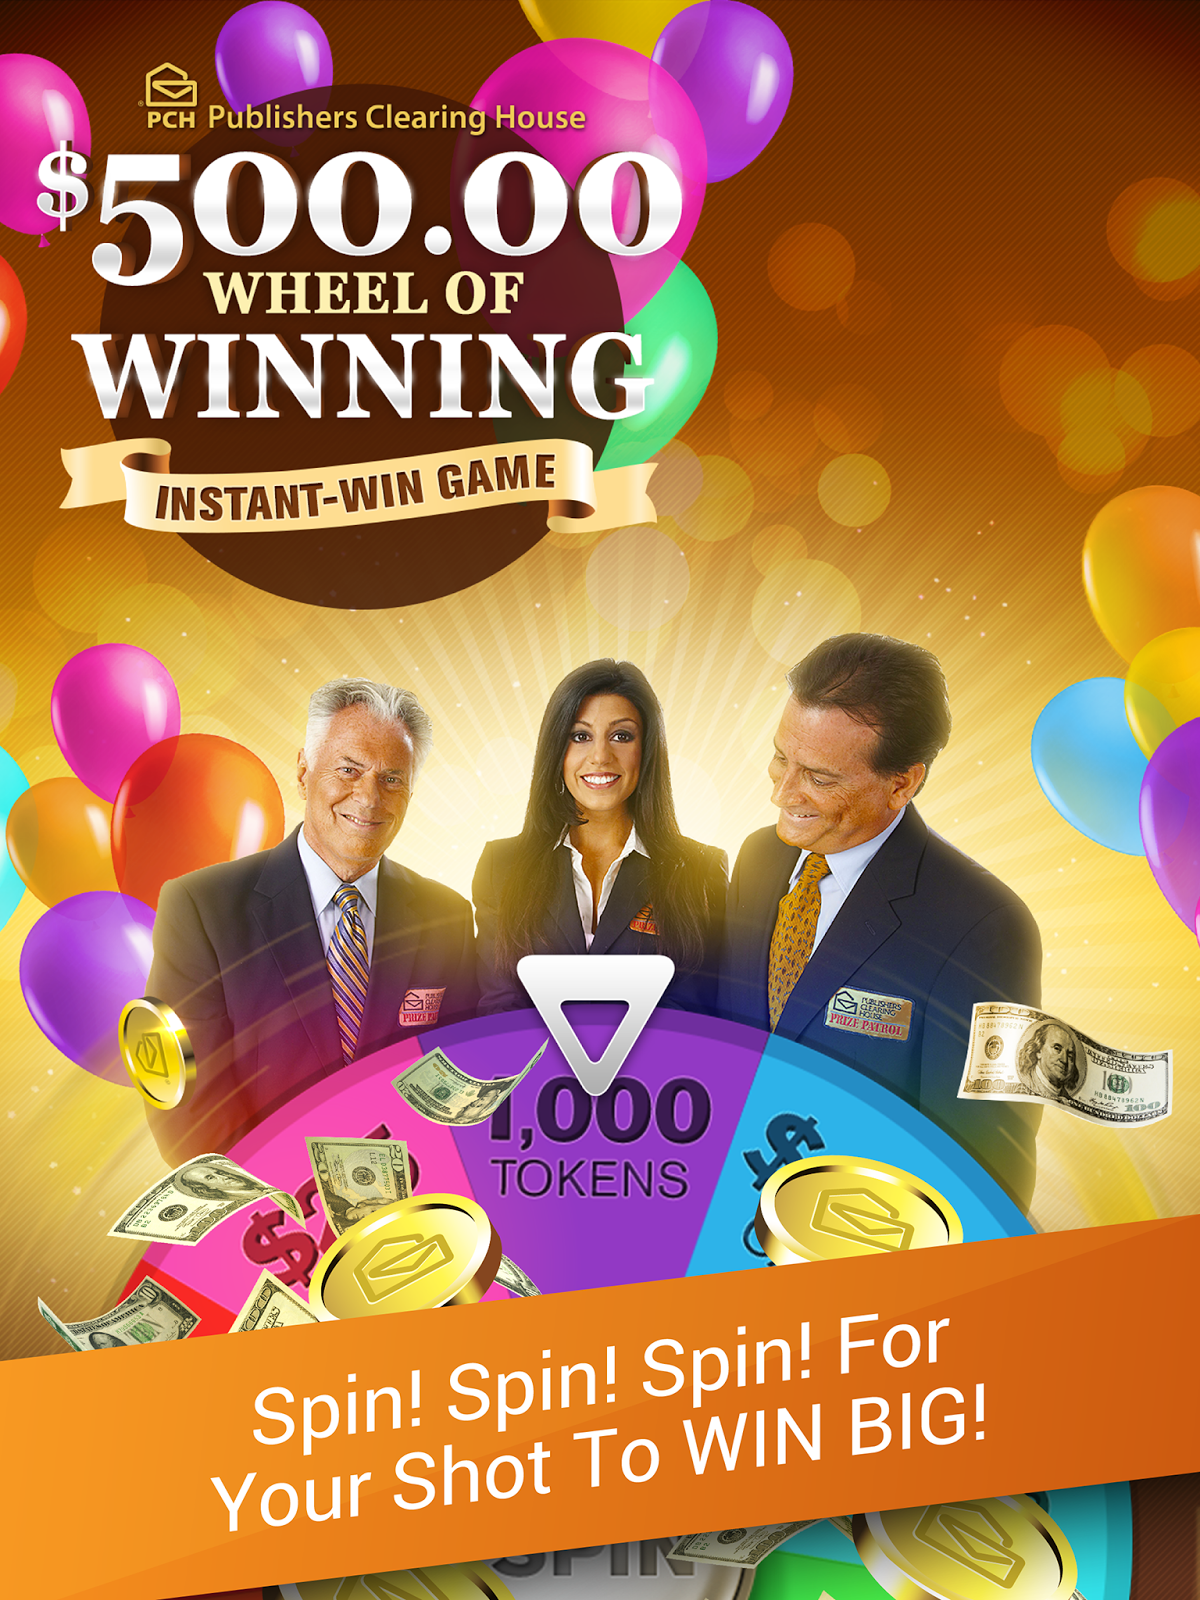 Screenshot Image Pch sweepstakes, Online sweepstakes, Pch